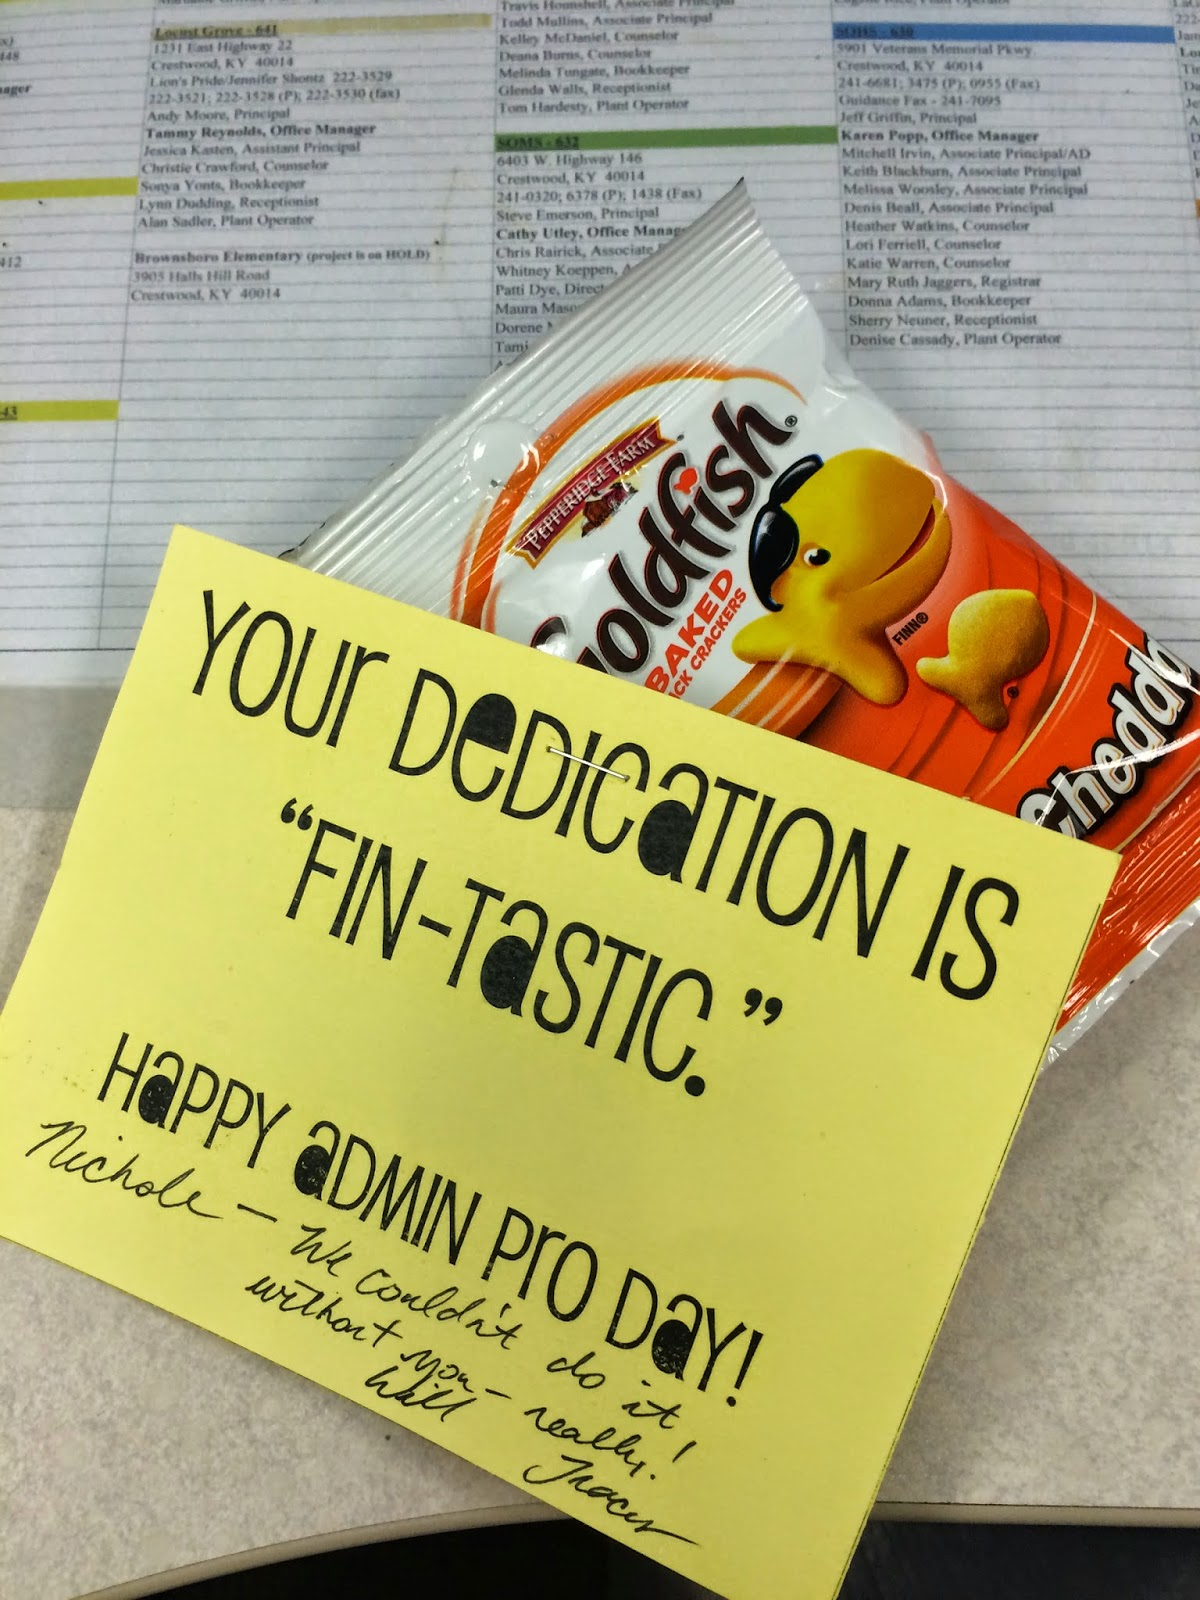 In Oldham County, we presented each of our admin pros with a token of  appreciation — bags of Goldfish crackers with cheesy sayings on them.